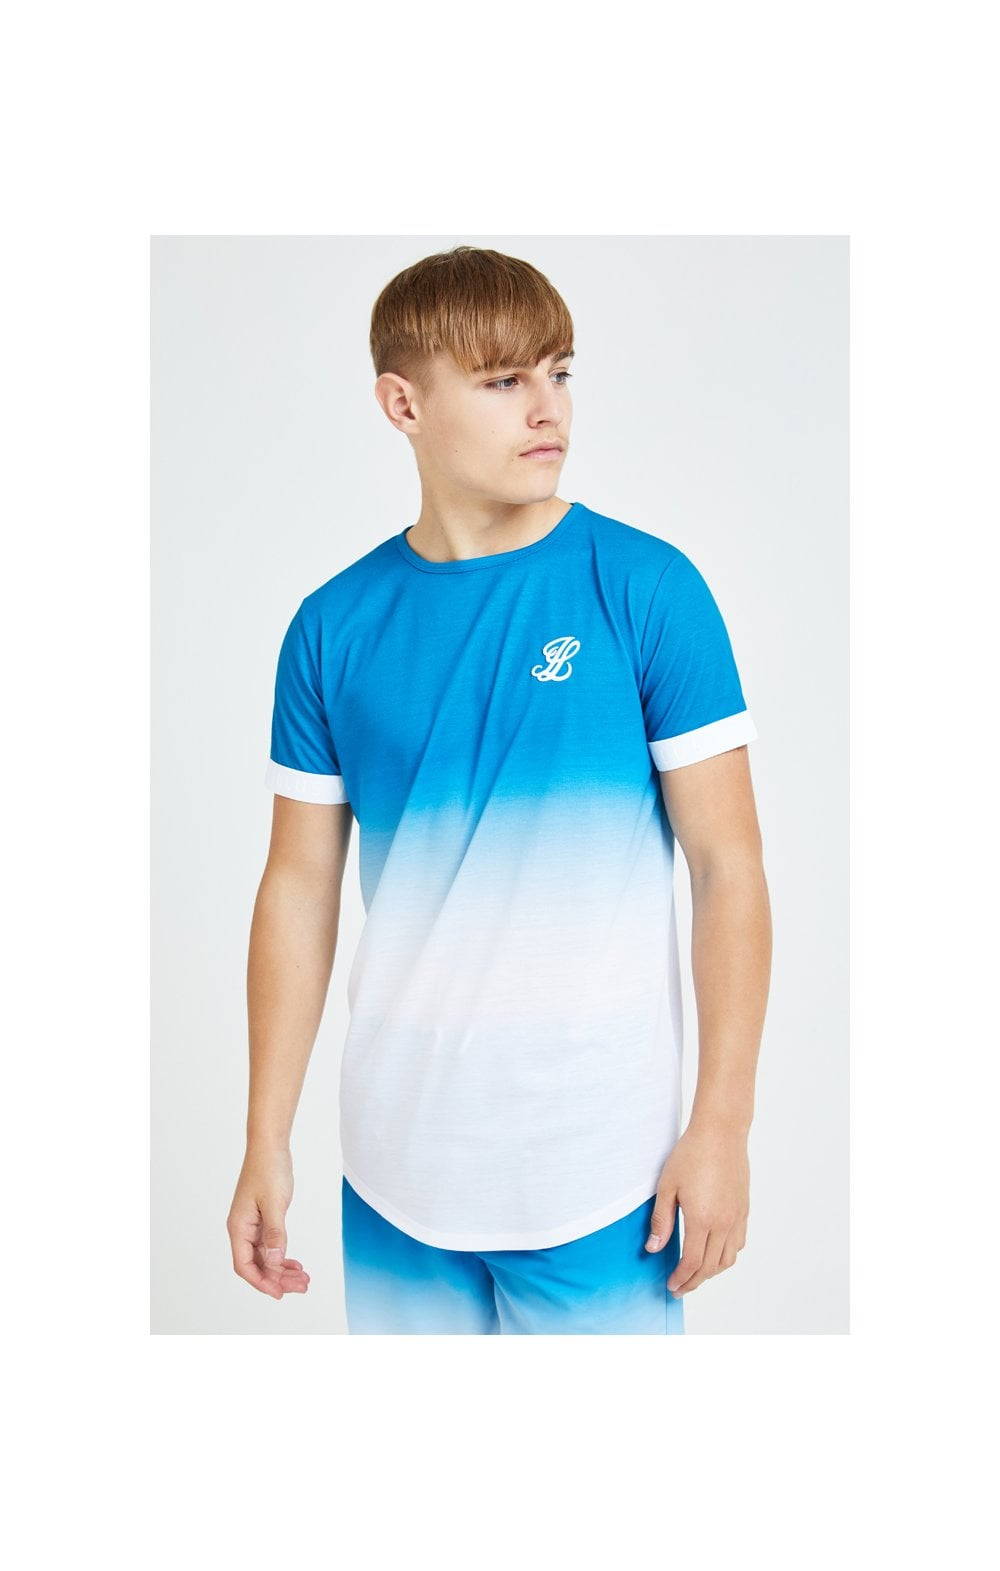 Illusive London Elevate Tech Tee - Blue & White